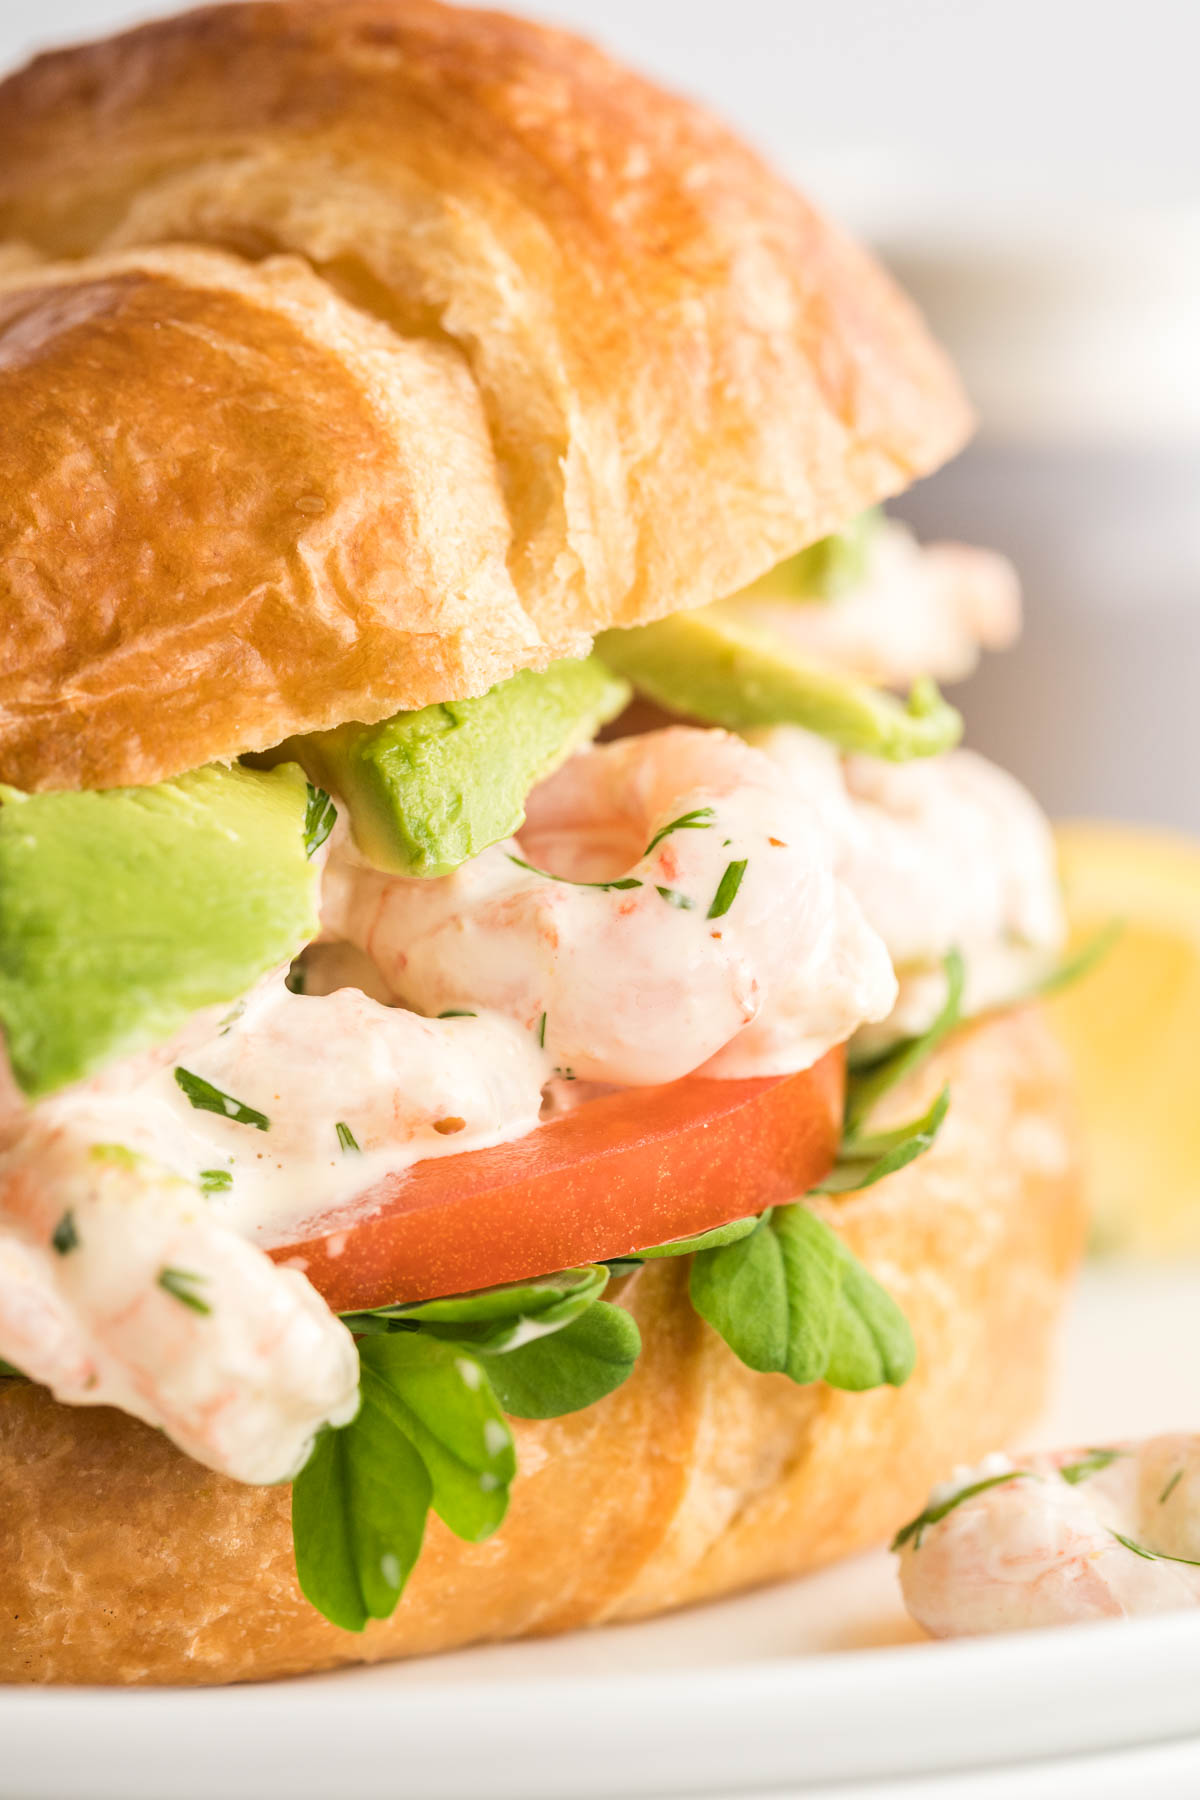 Shrimp salad made with mayo and dill in a croissant with pea shoots, tomato and avocado.